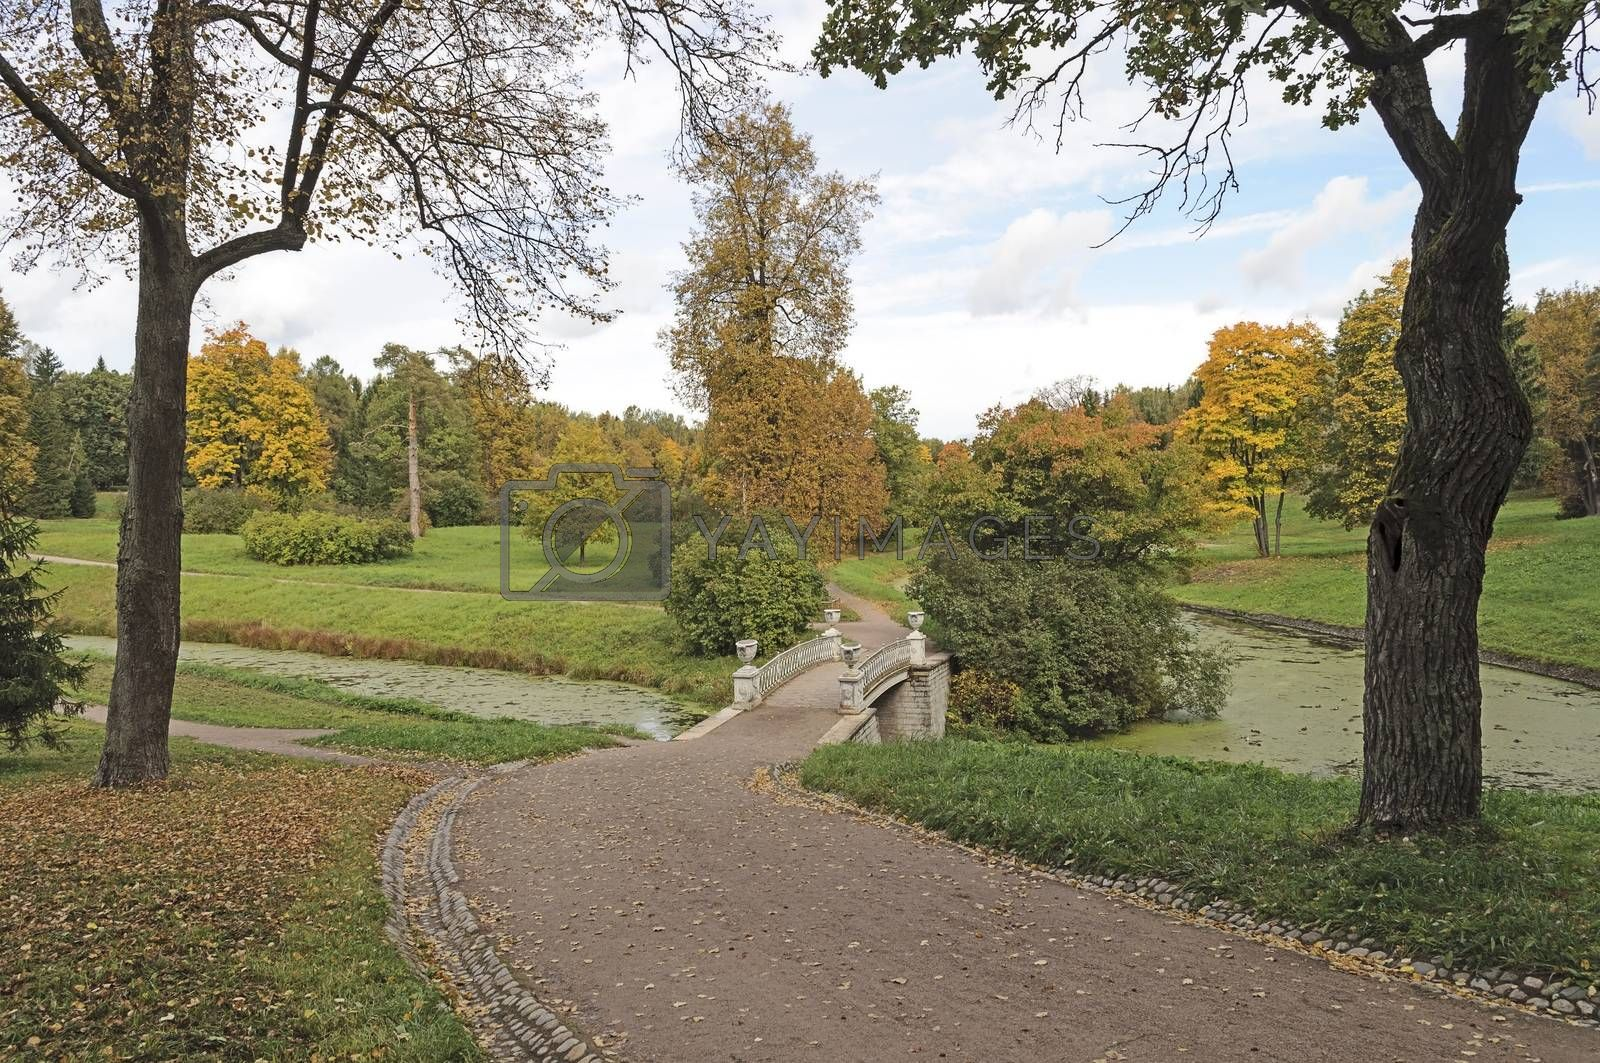 Trail with fallen leaves to the bridge in old Pavlovsk park of St. Petersburg, autumn